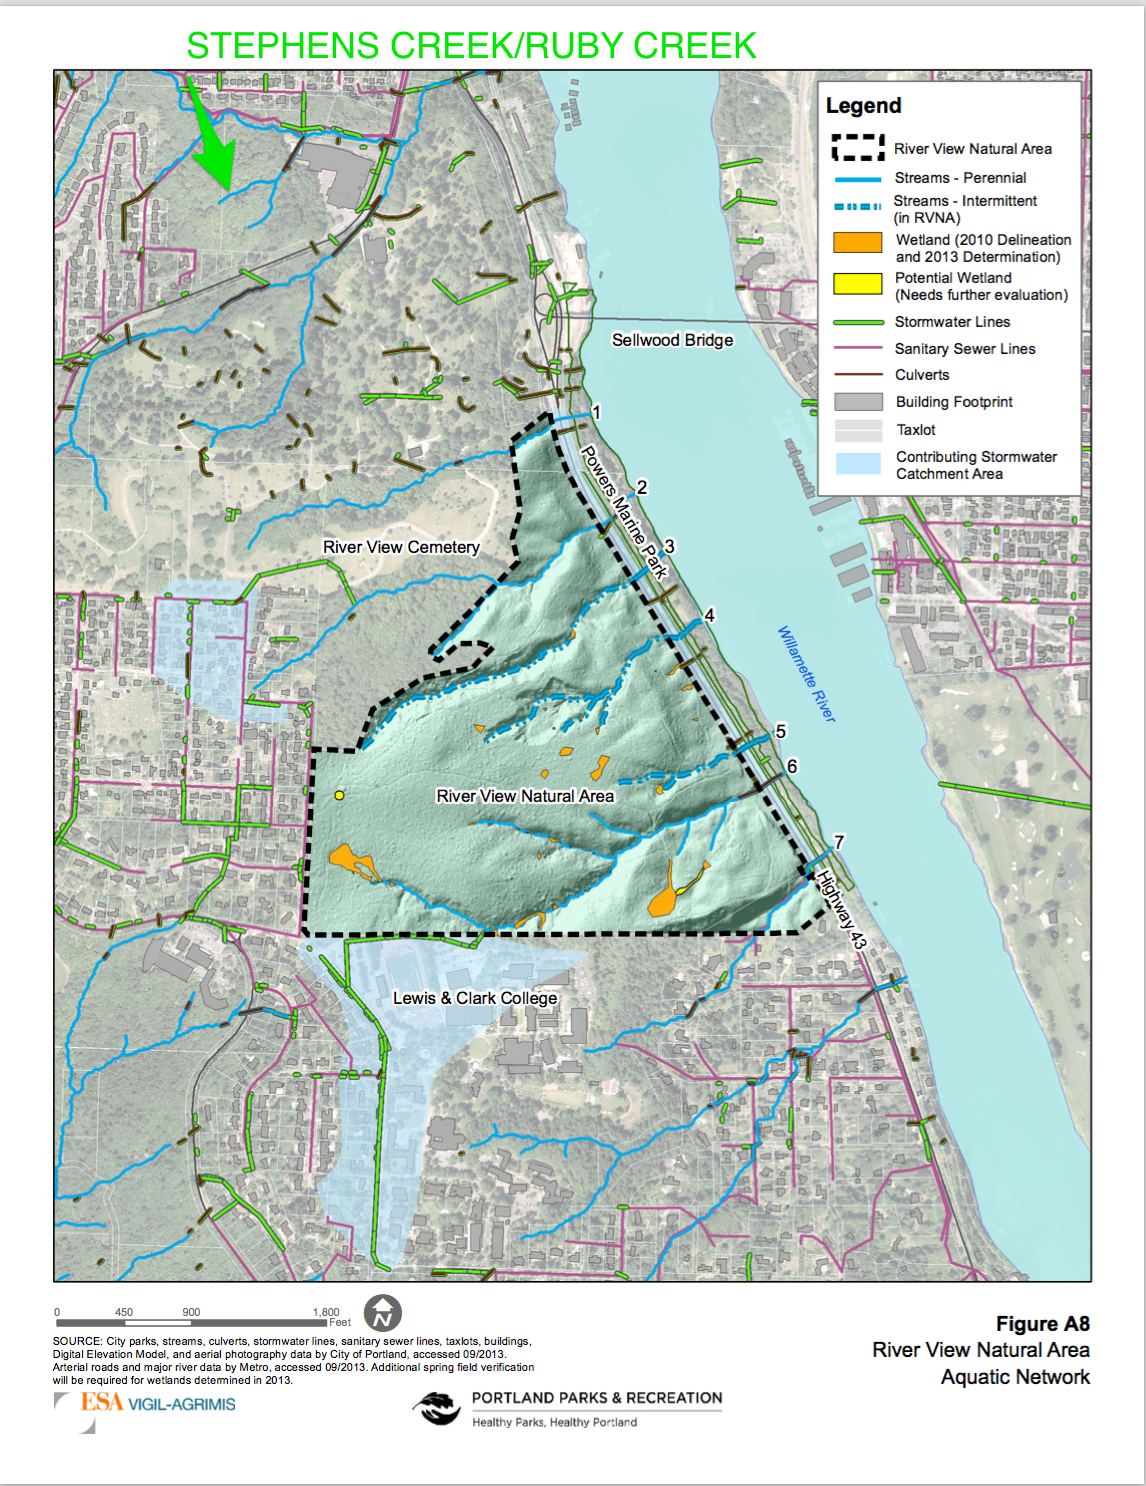 Aquatic Network showing Stephens Creek and Ruby Creek that have endangered Salmon and Trout that migrate to Willamette River as one of the few remaining open creeks.